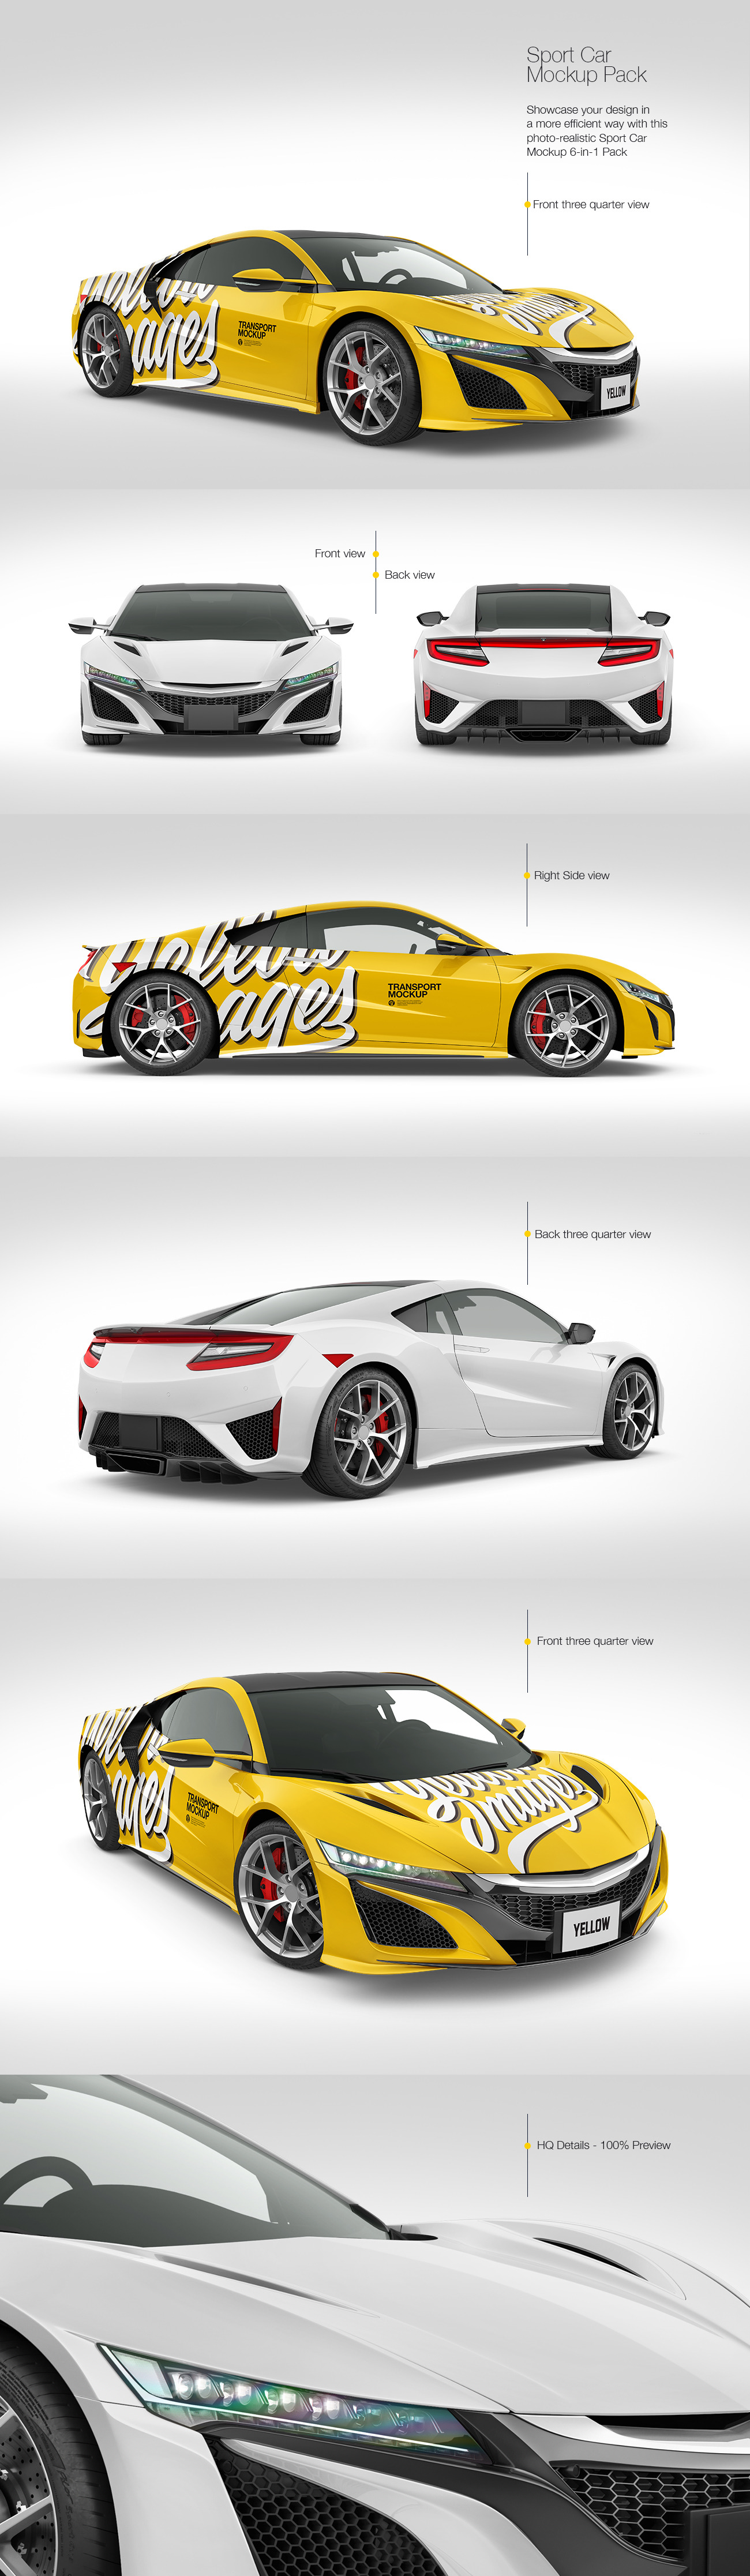 Download Sports Car Mockup Free Download Free And Premium Psd Mockup Templates And Design Assets PSD Mockup Templates